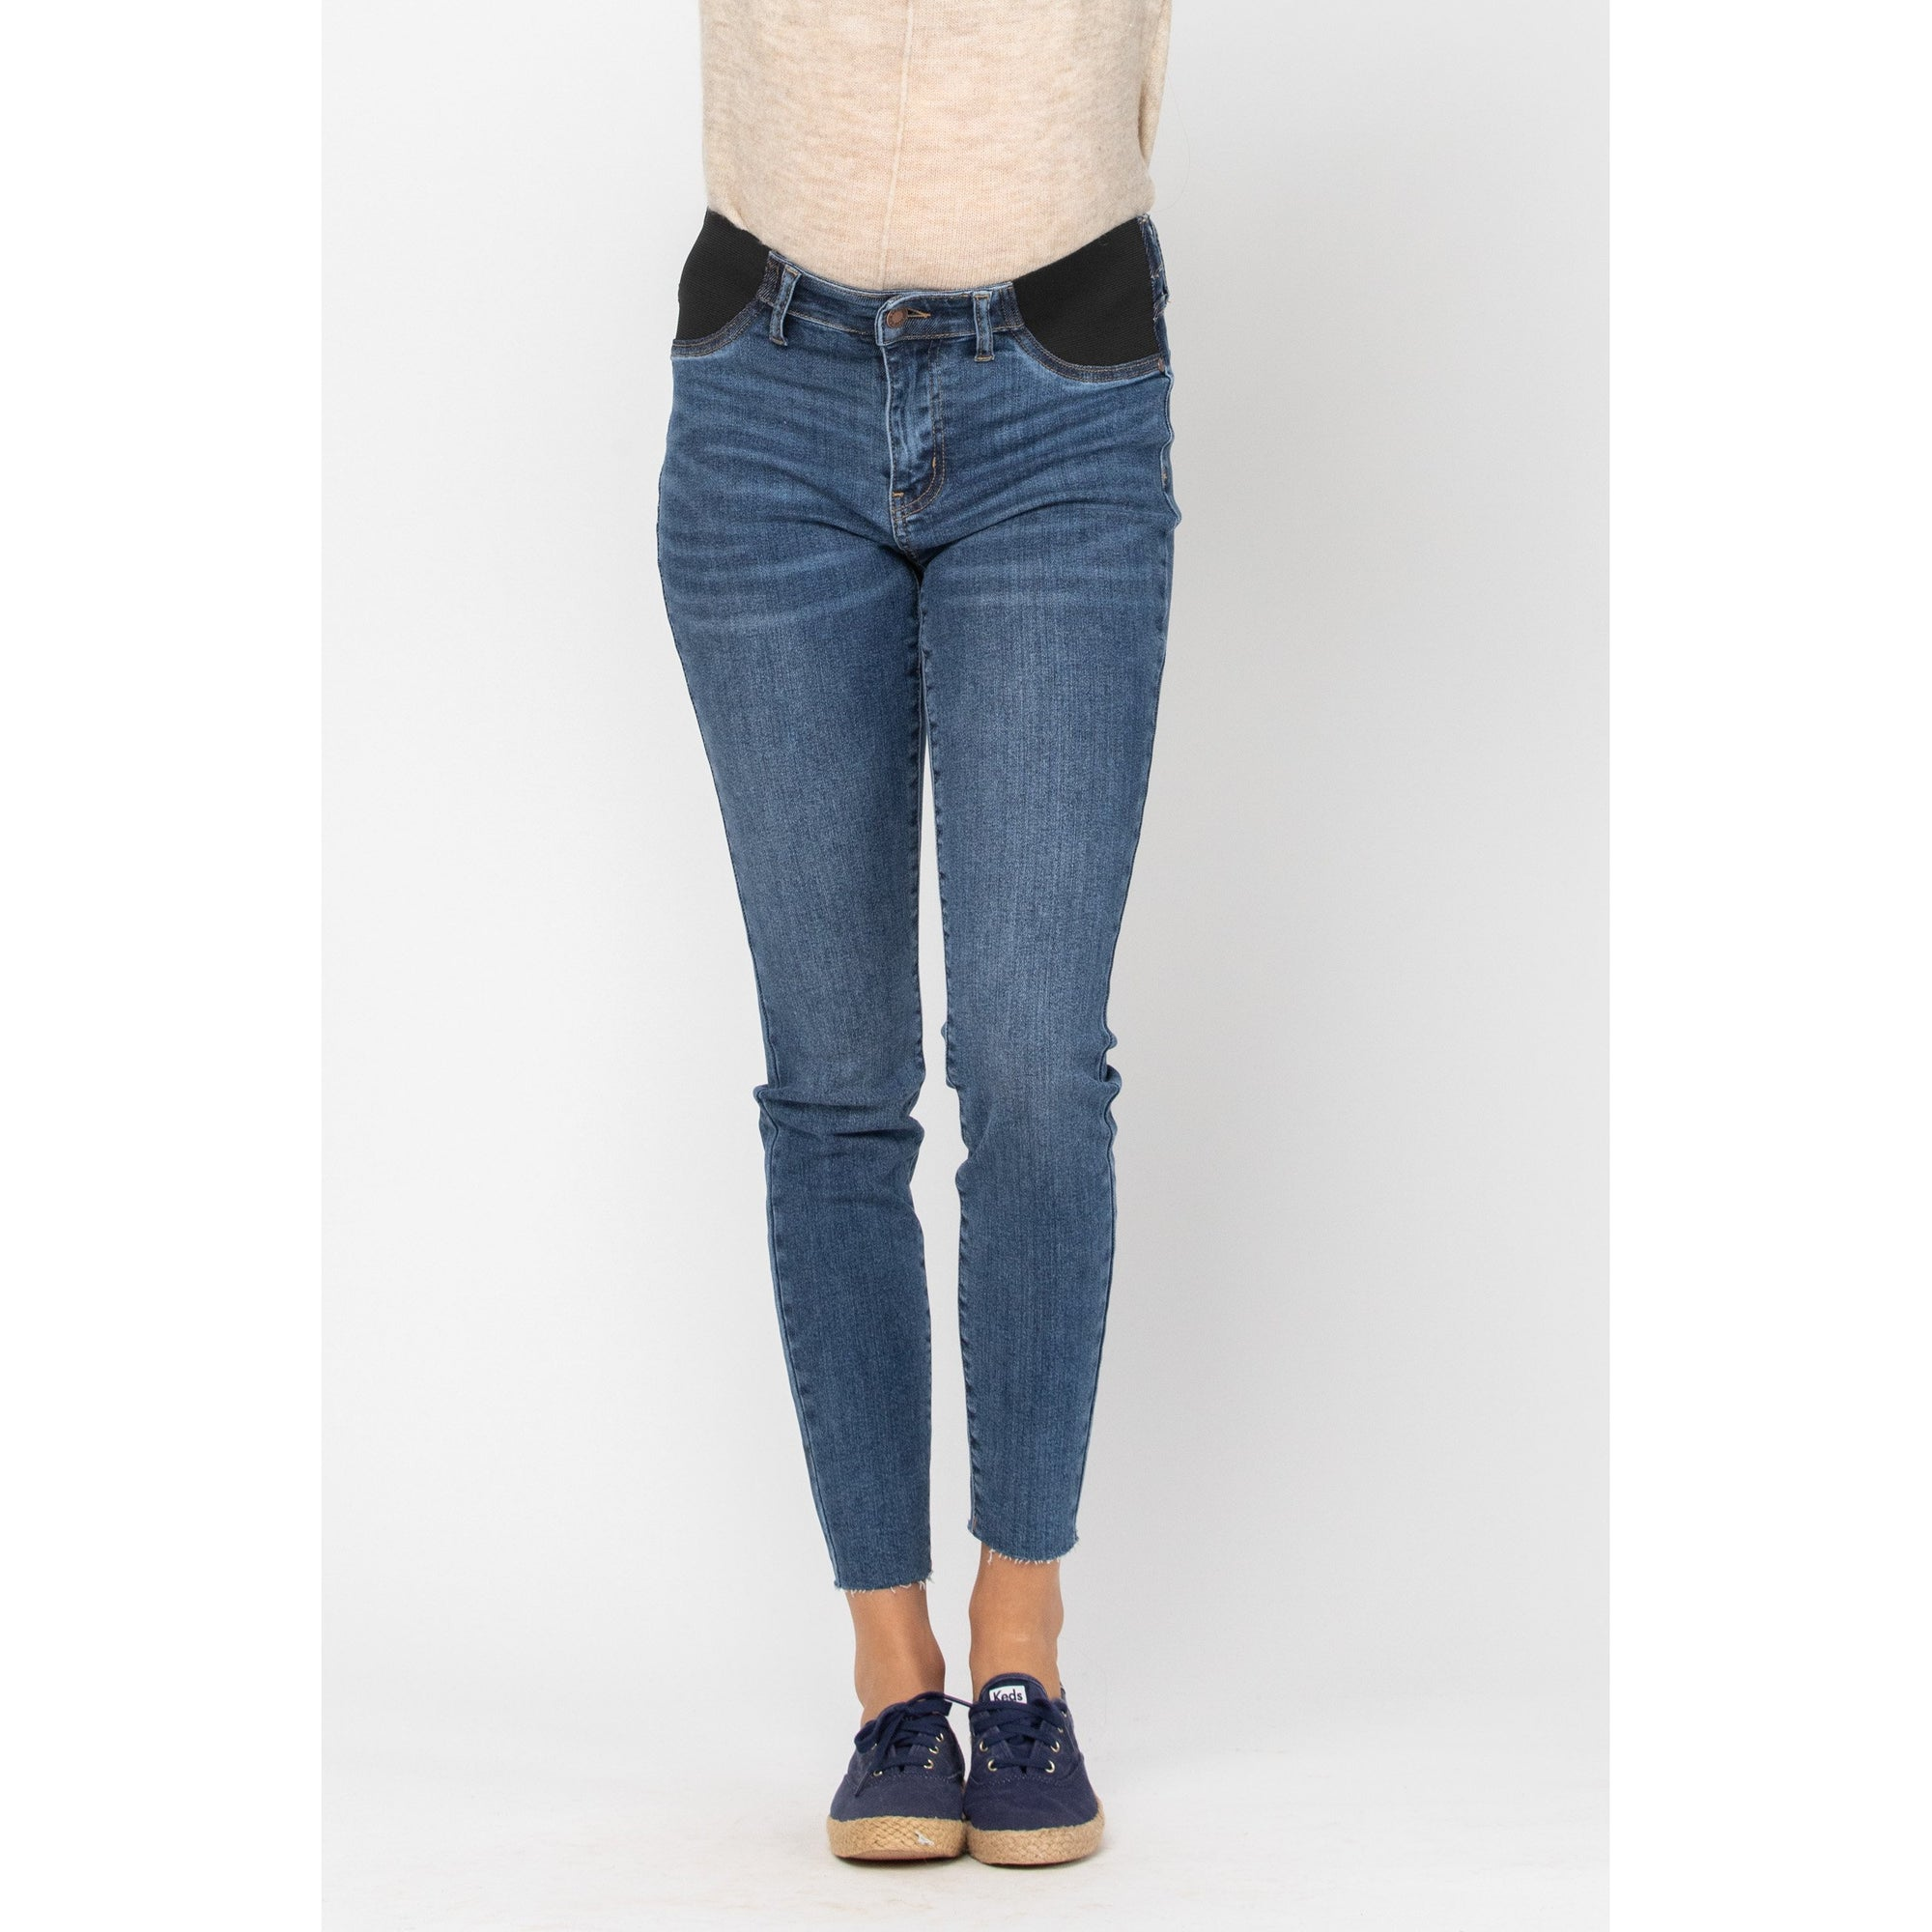 Judy Blue Maternity Raw Hem Skinny Jeans - Style #9806 - Online Only